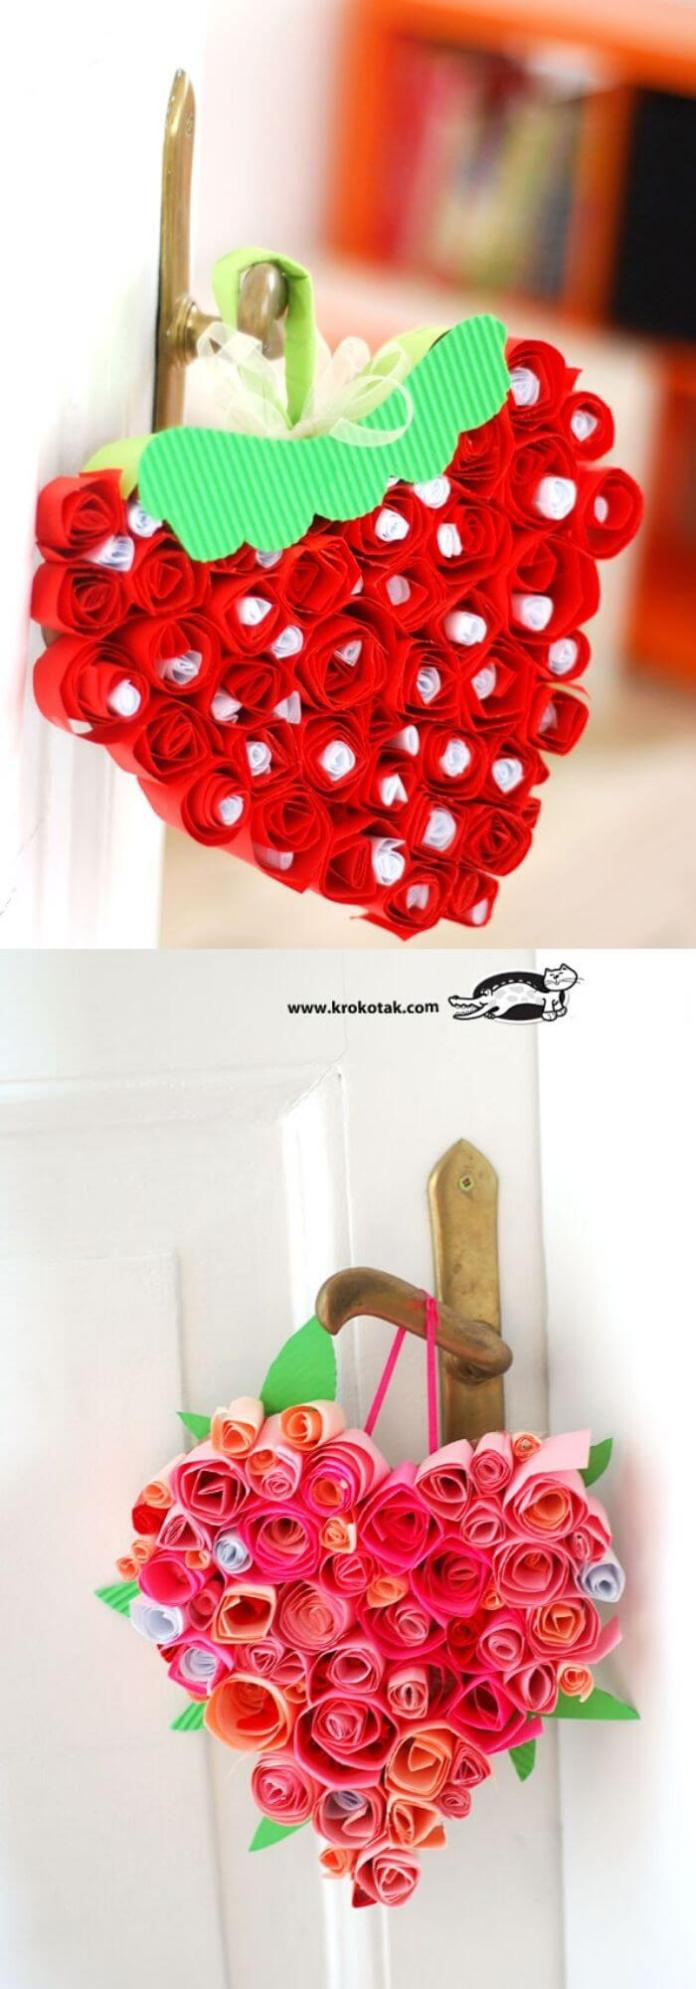 Strawberries | Heart-Shaped Crafts For Valentine's Day